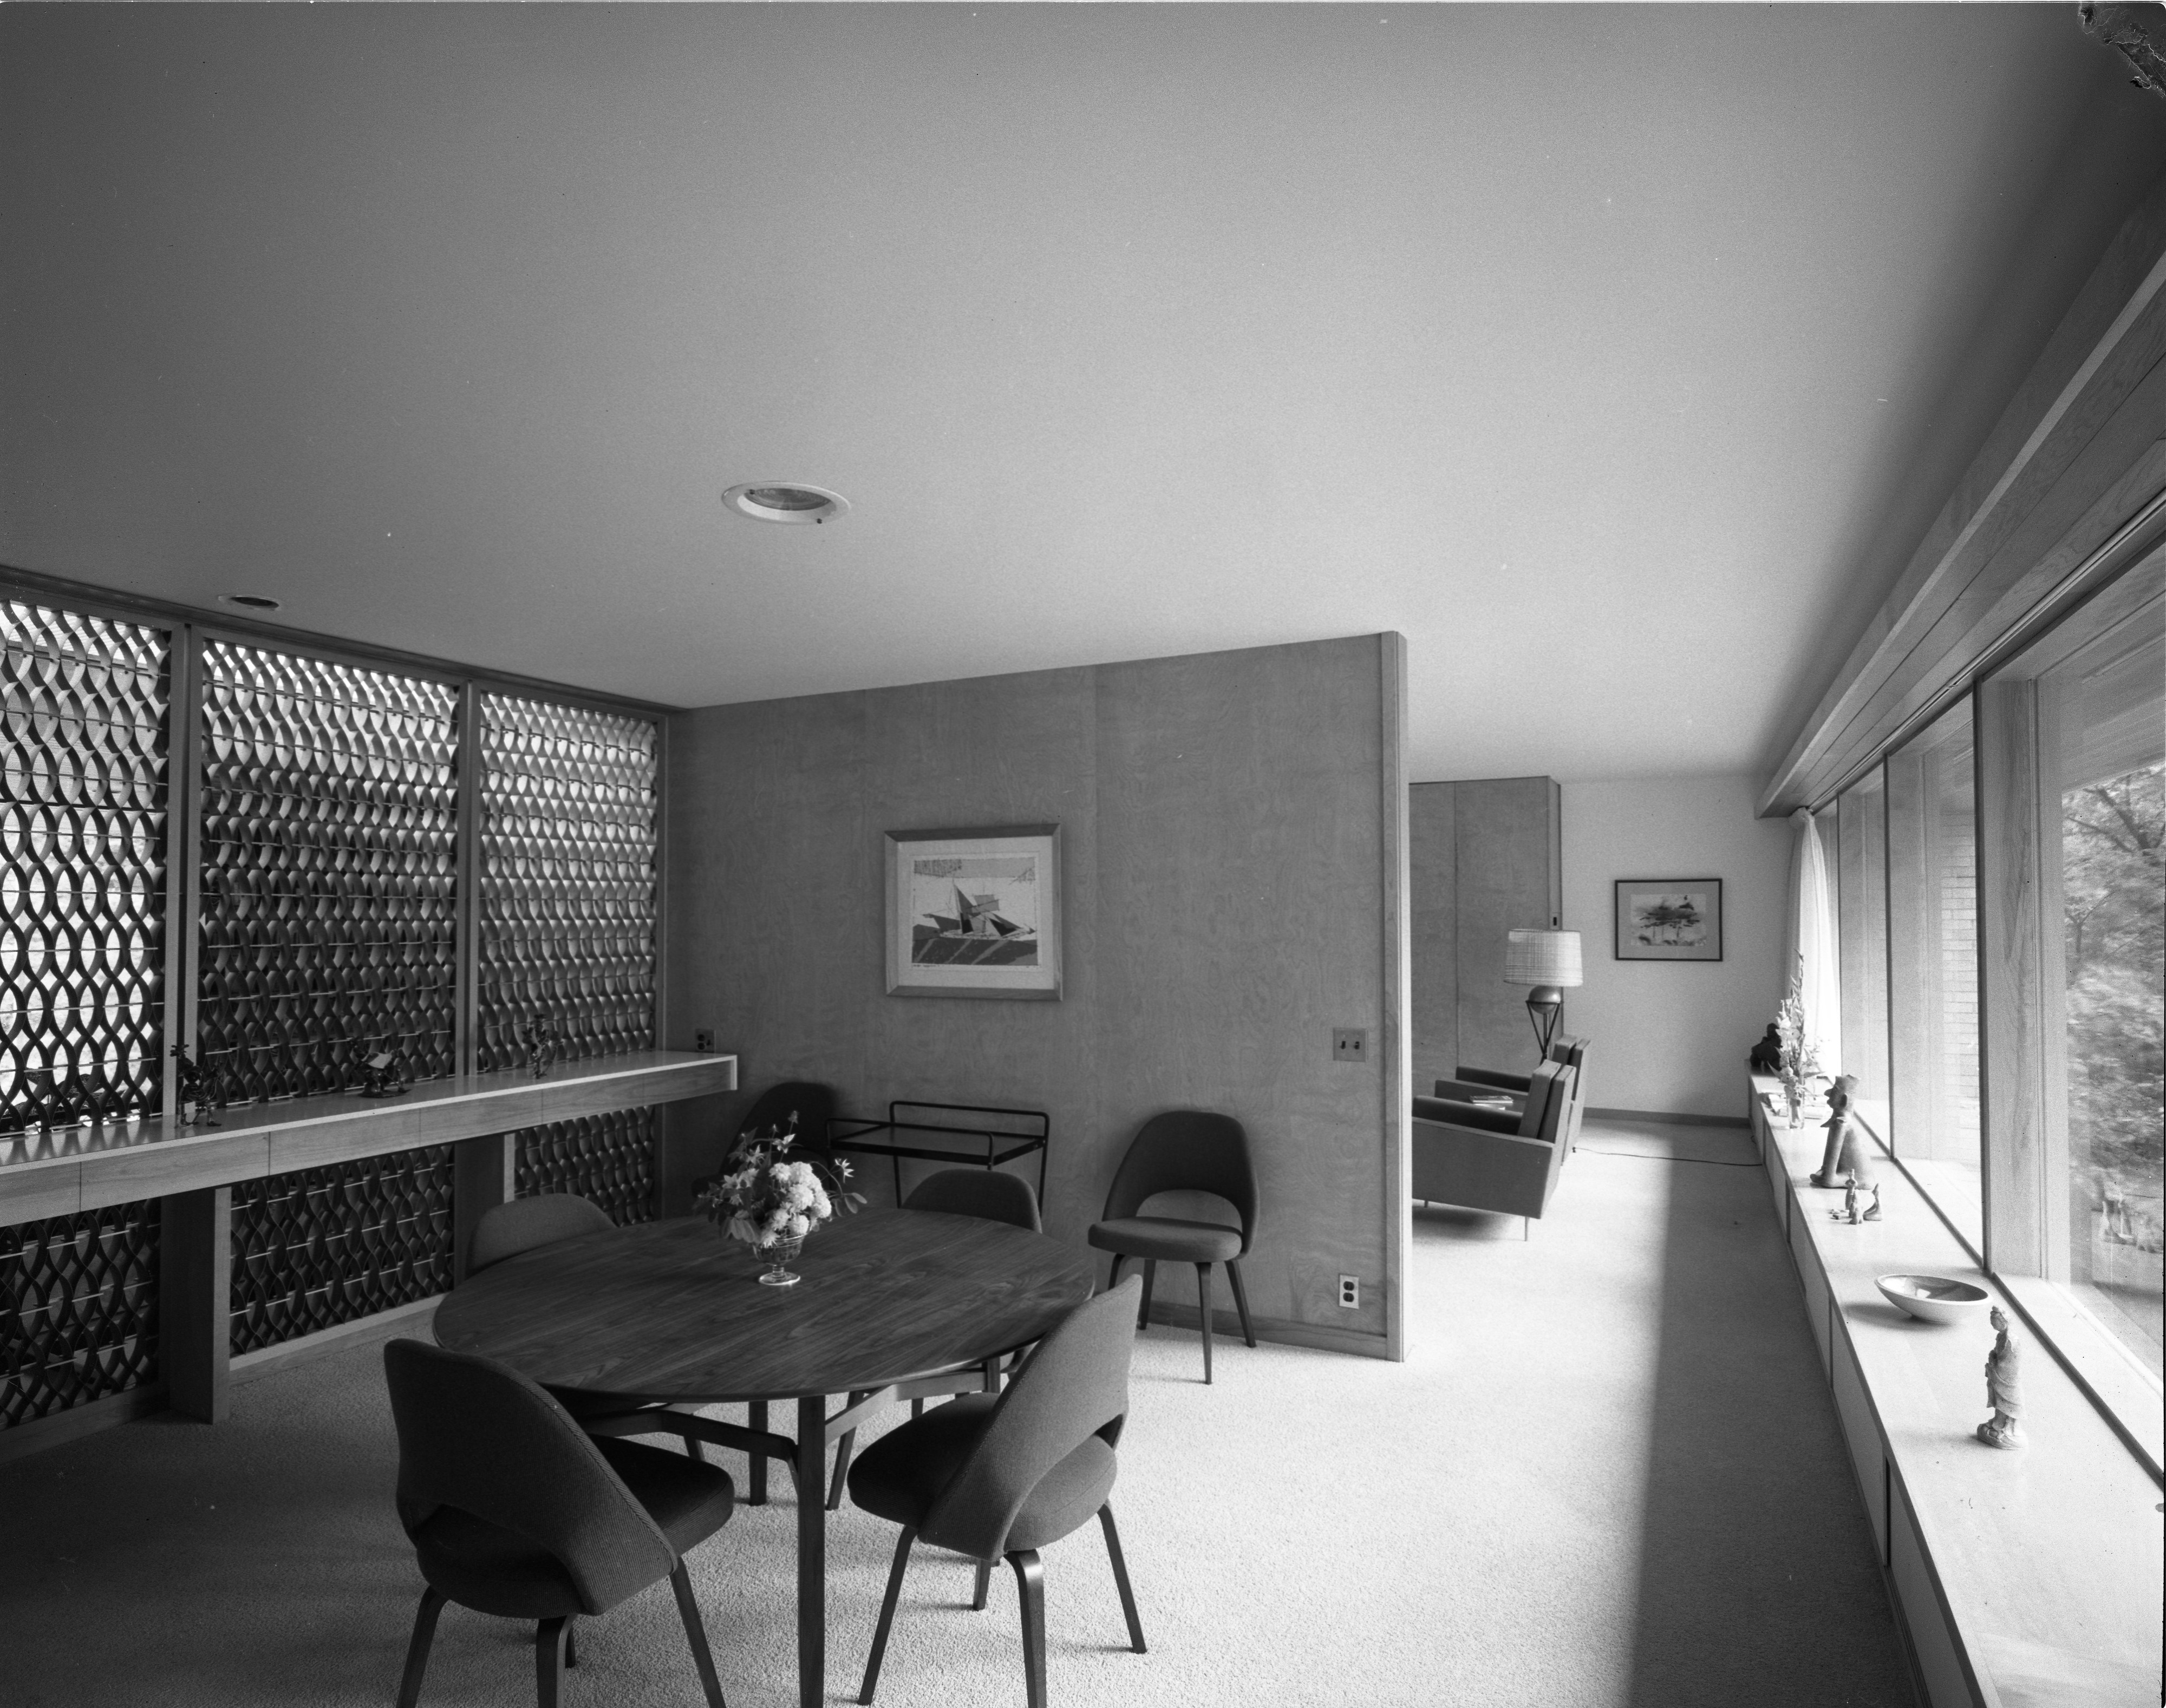 Dining Room In the Pryor Mid-Century Modern Home In Barton Hills, July 1960 image